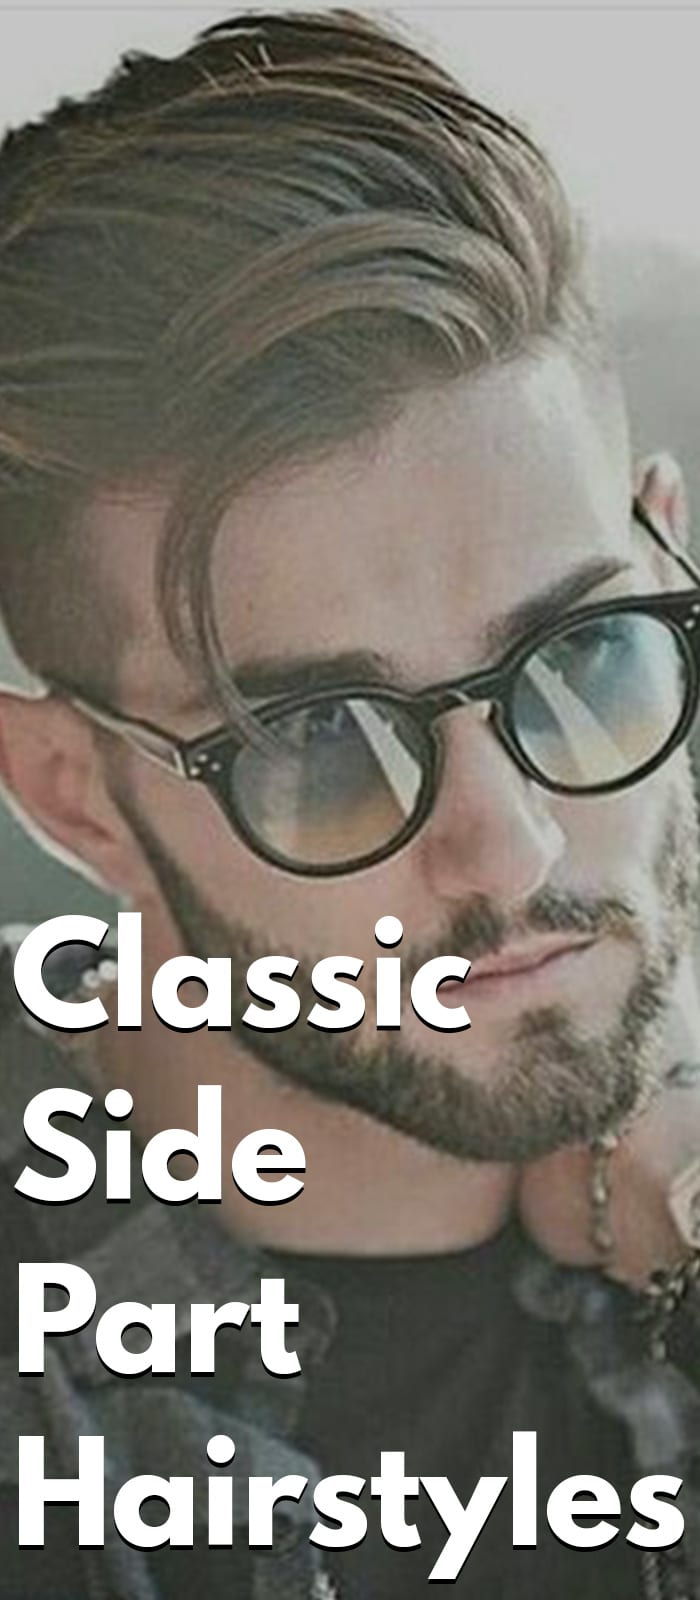 Classic Side Part Hairstyles